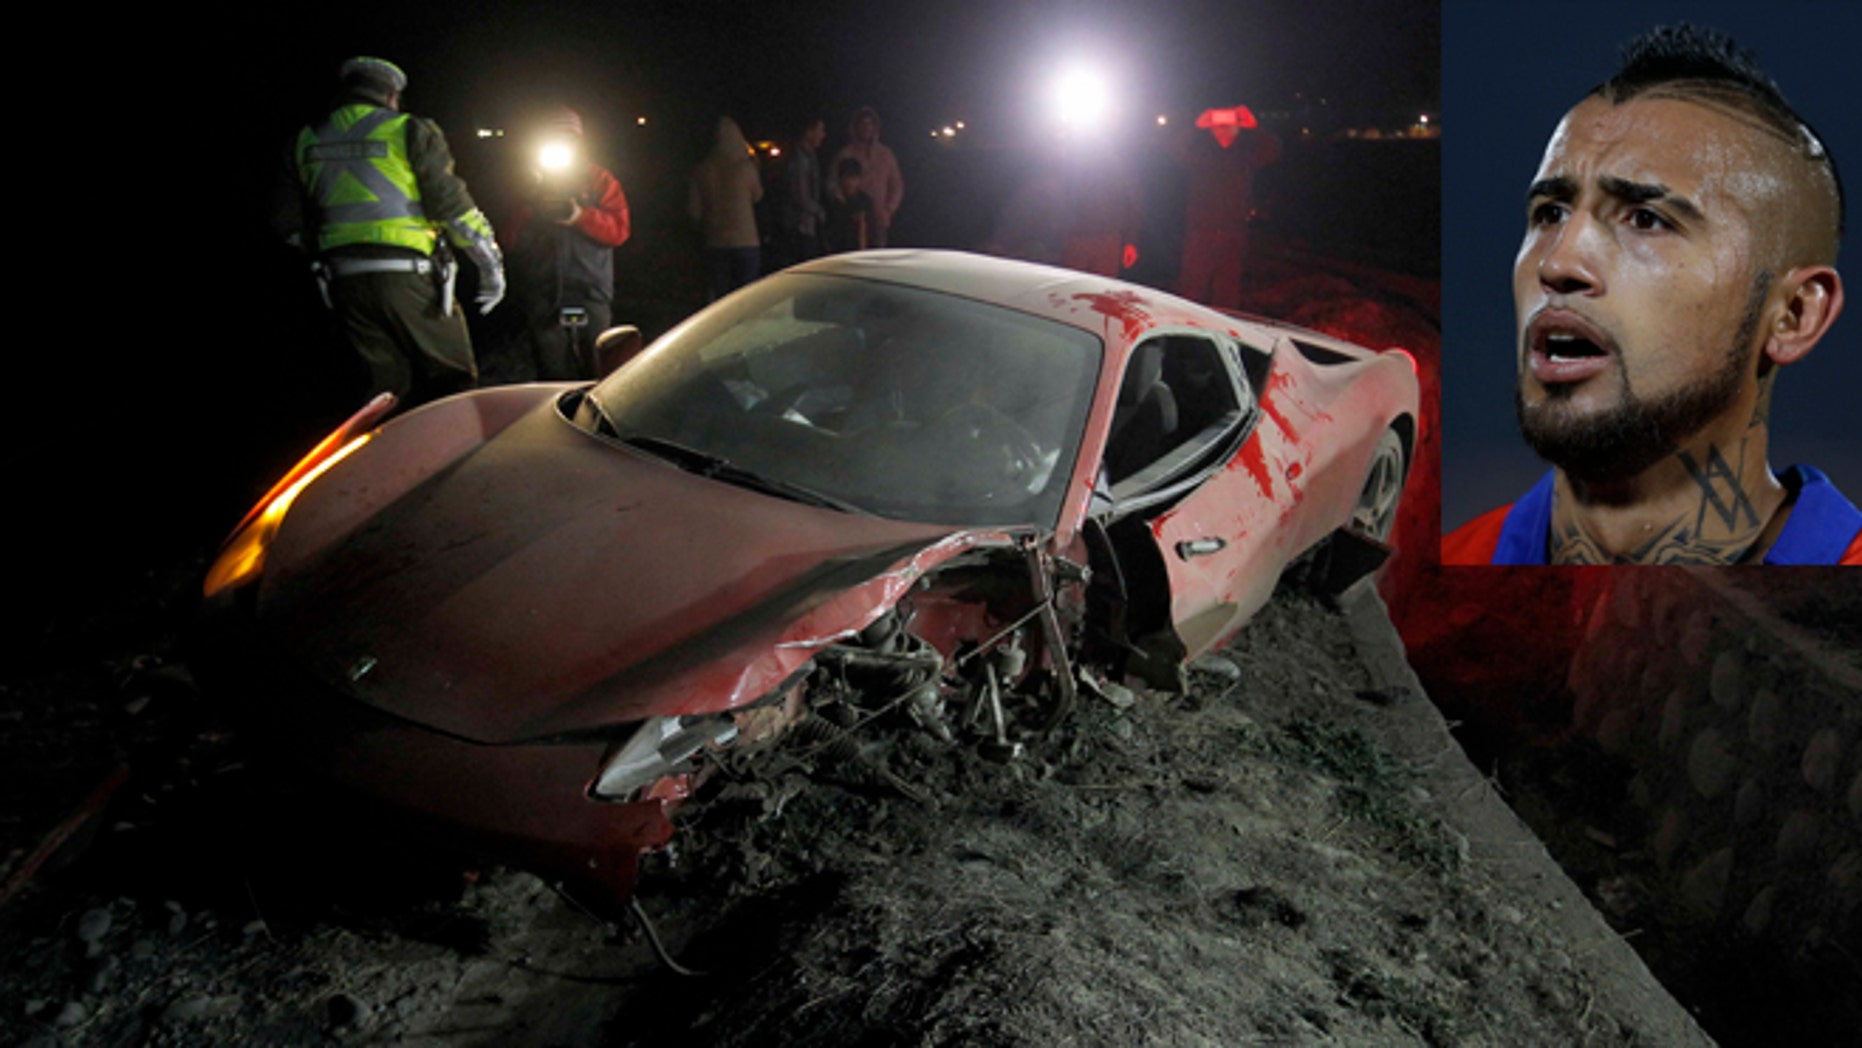 Arturo Vidal's wrecked vehicle after he crashed it near Santiago, Chile, Tuesday, June 16, 2015.